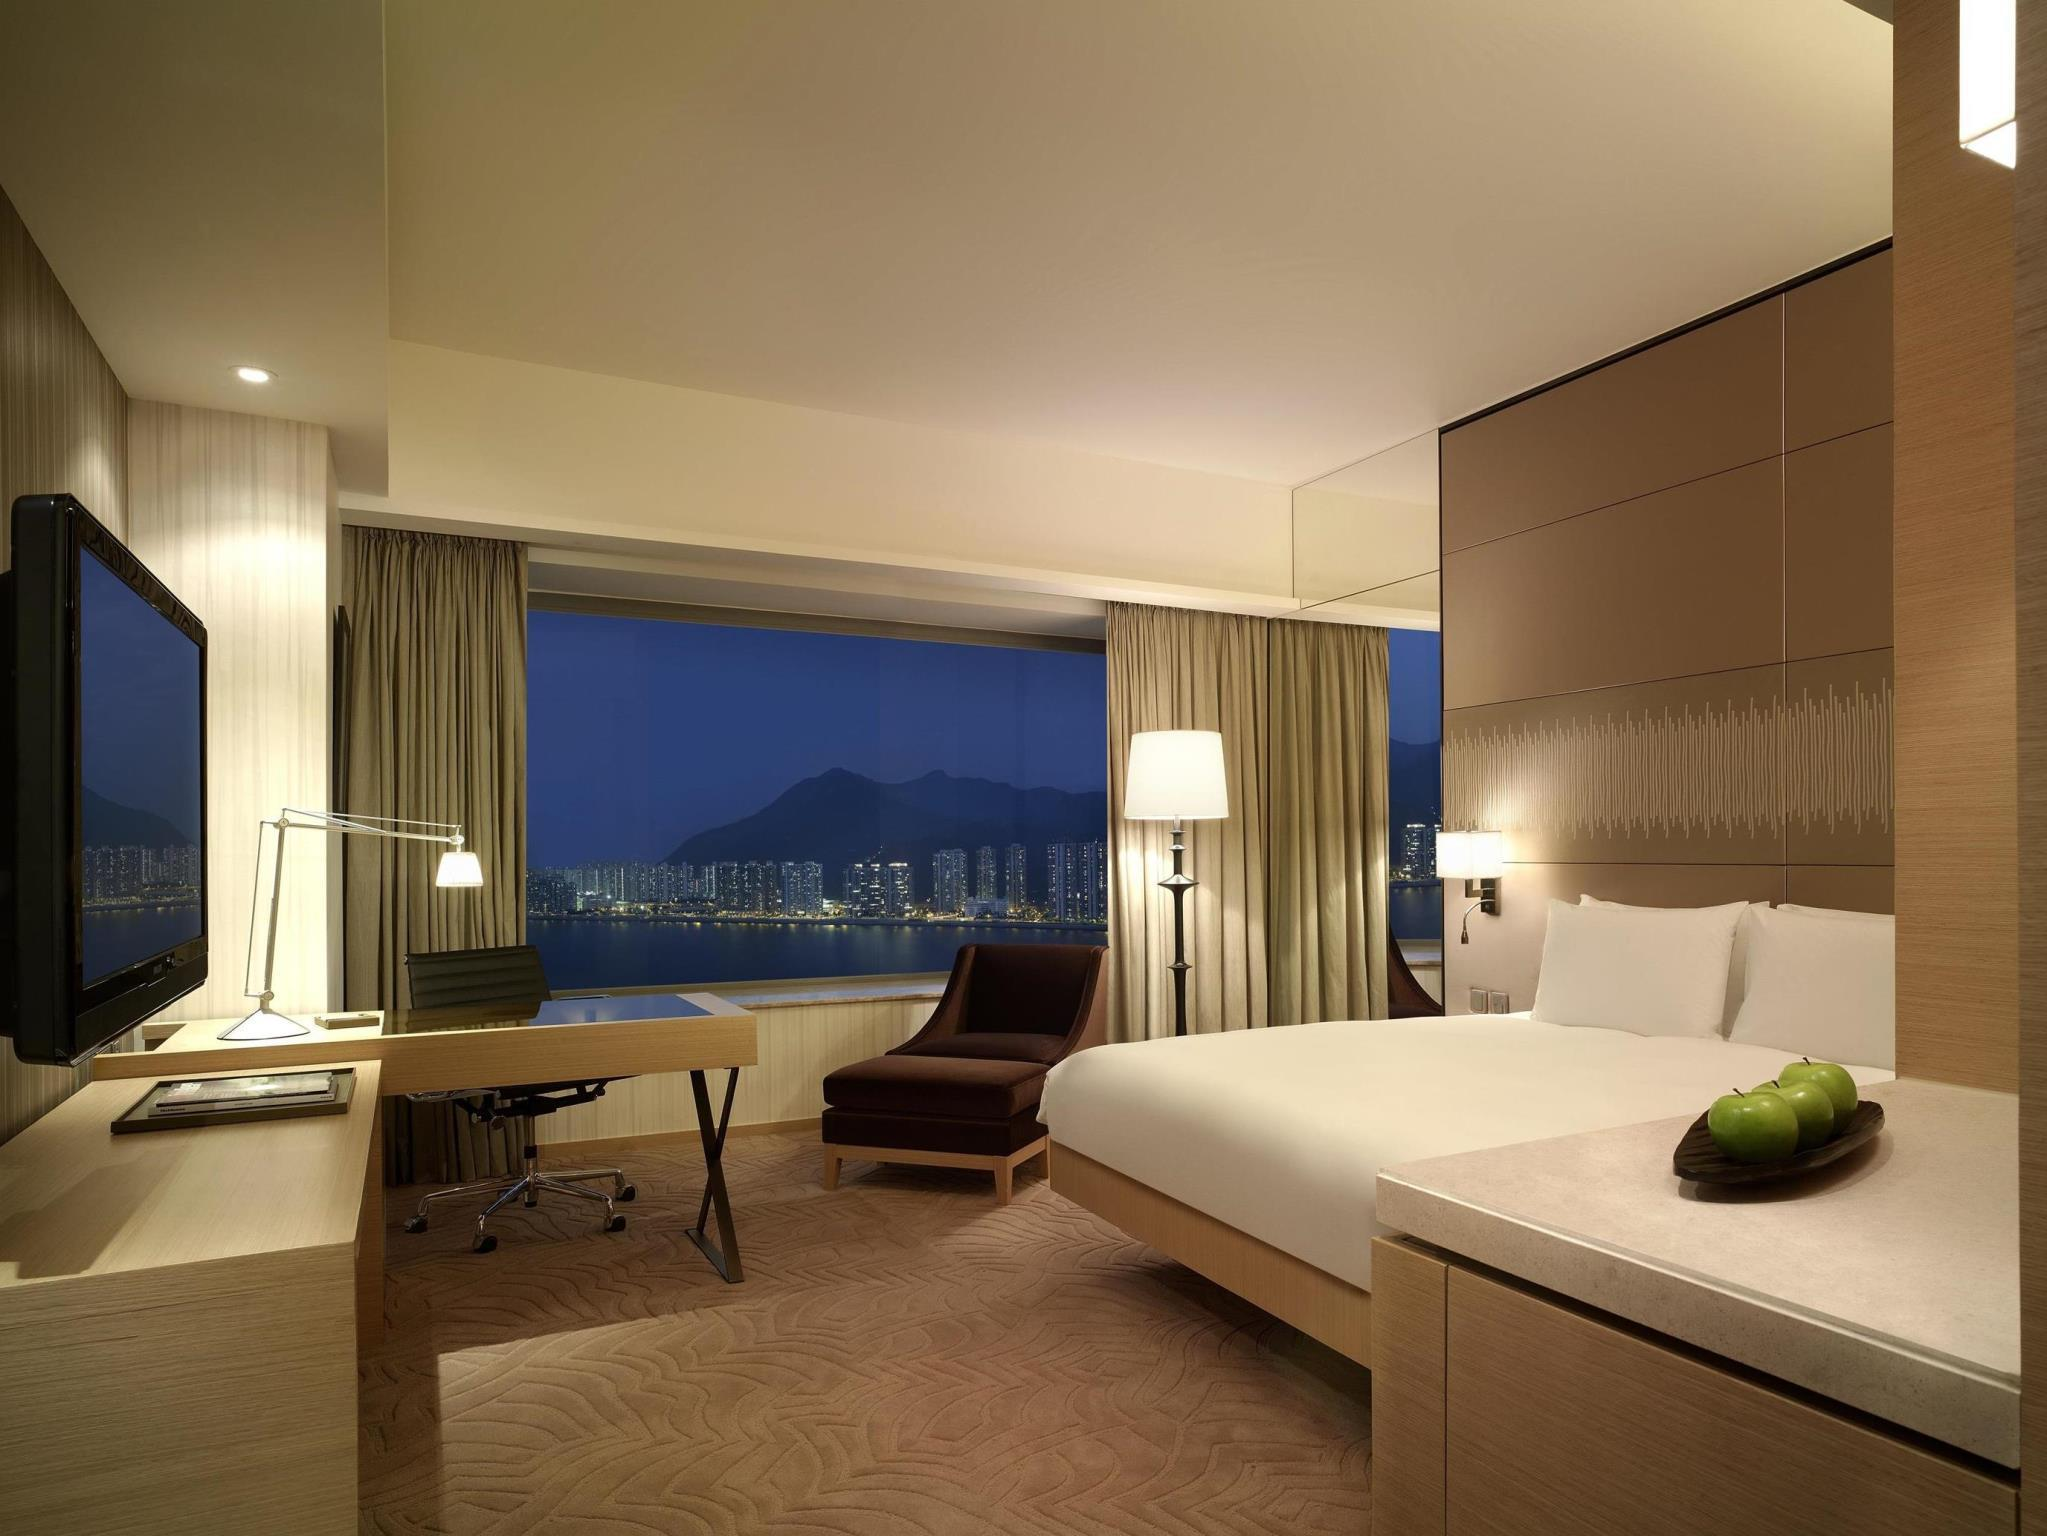 Kamar Club dengan Kasur King dan Pemandangan Pelabuhan (Club Harbour View Room with King Bed)